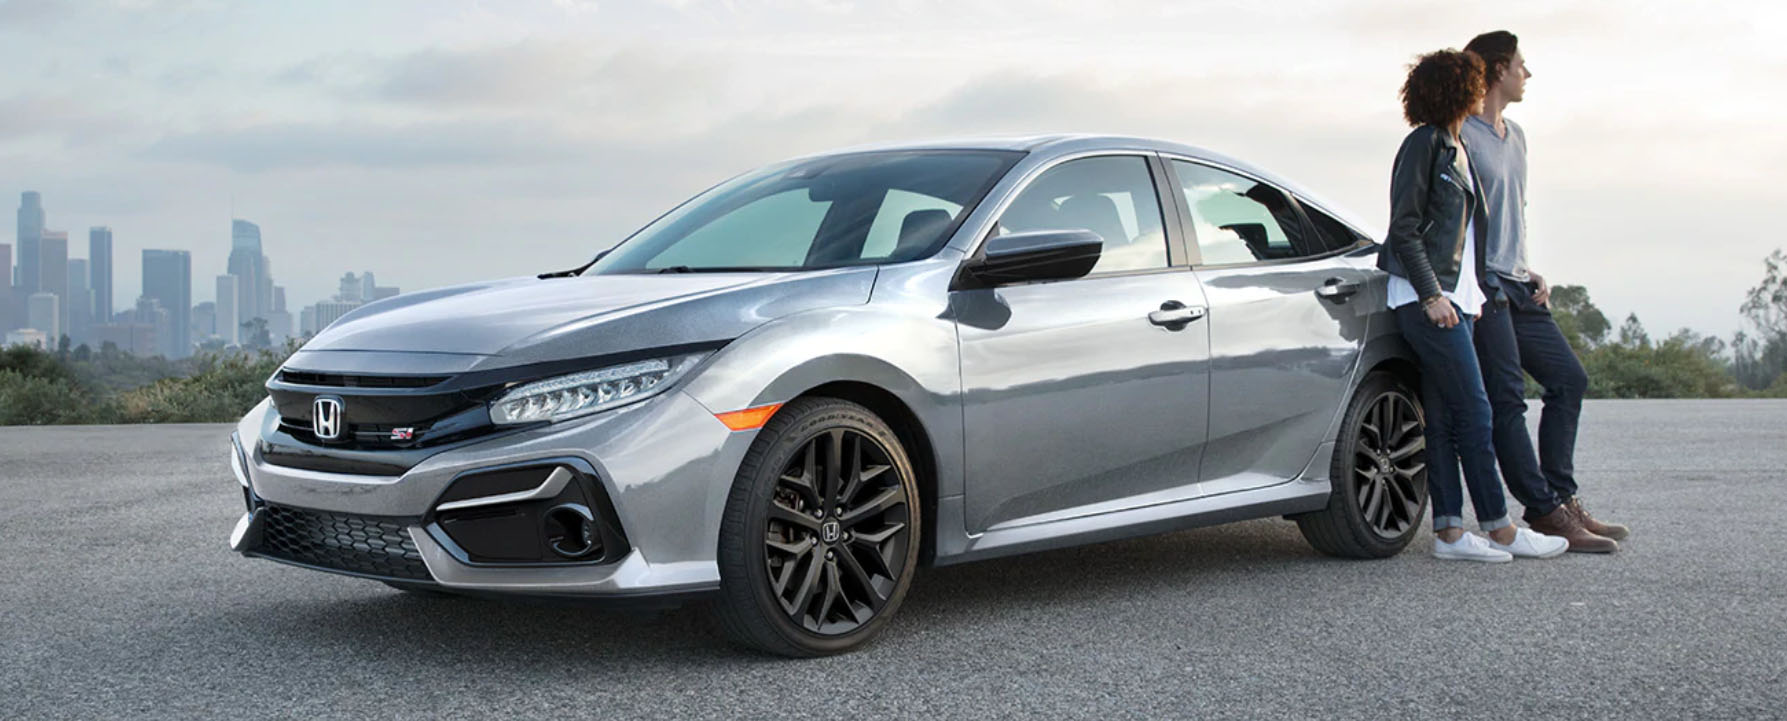 2020 Honda Civic Si Sedan For Sale in Golden